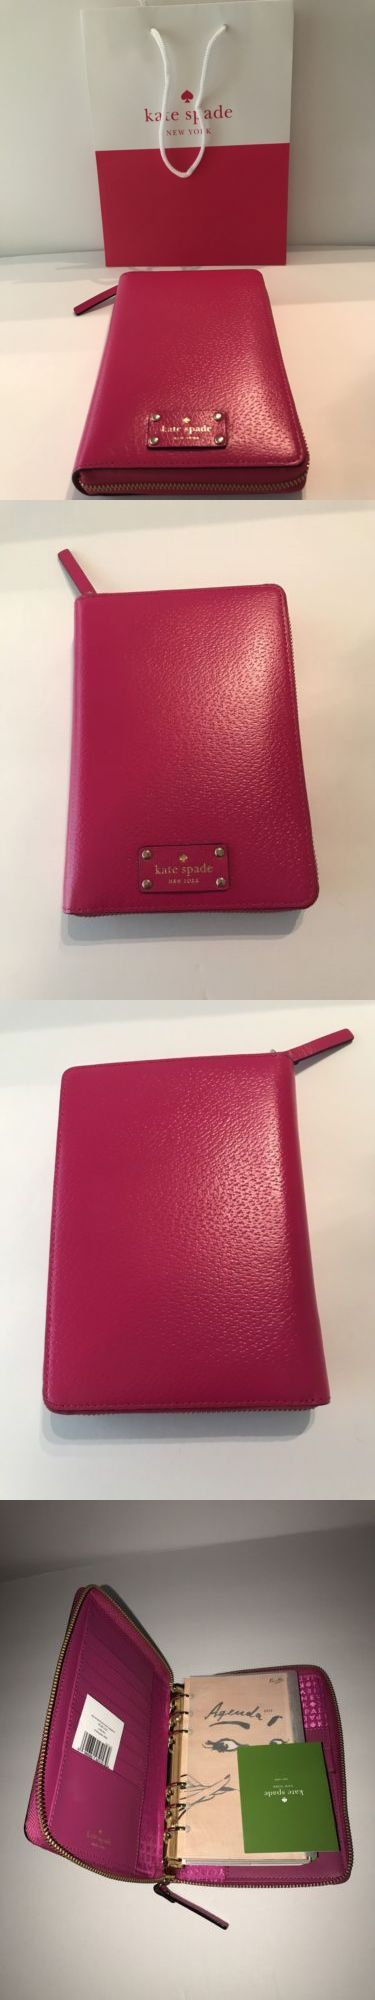 Organizers and Day Planners 15735: Nwt Kate Spade Sweetheart Pink Wellesley Grove Street 2017 Planner Agenda -> BUY IT NOW ONLY: $69 on eBay!